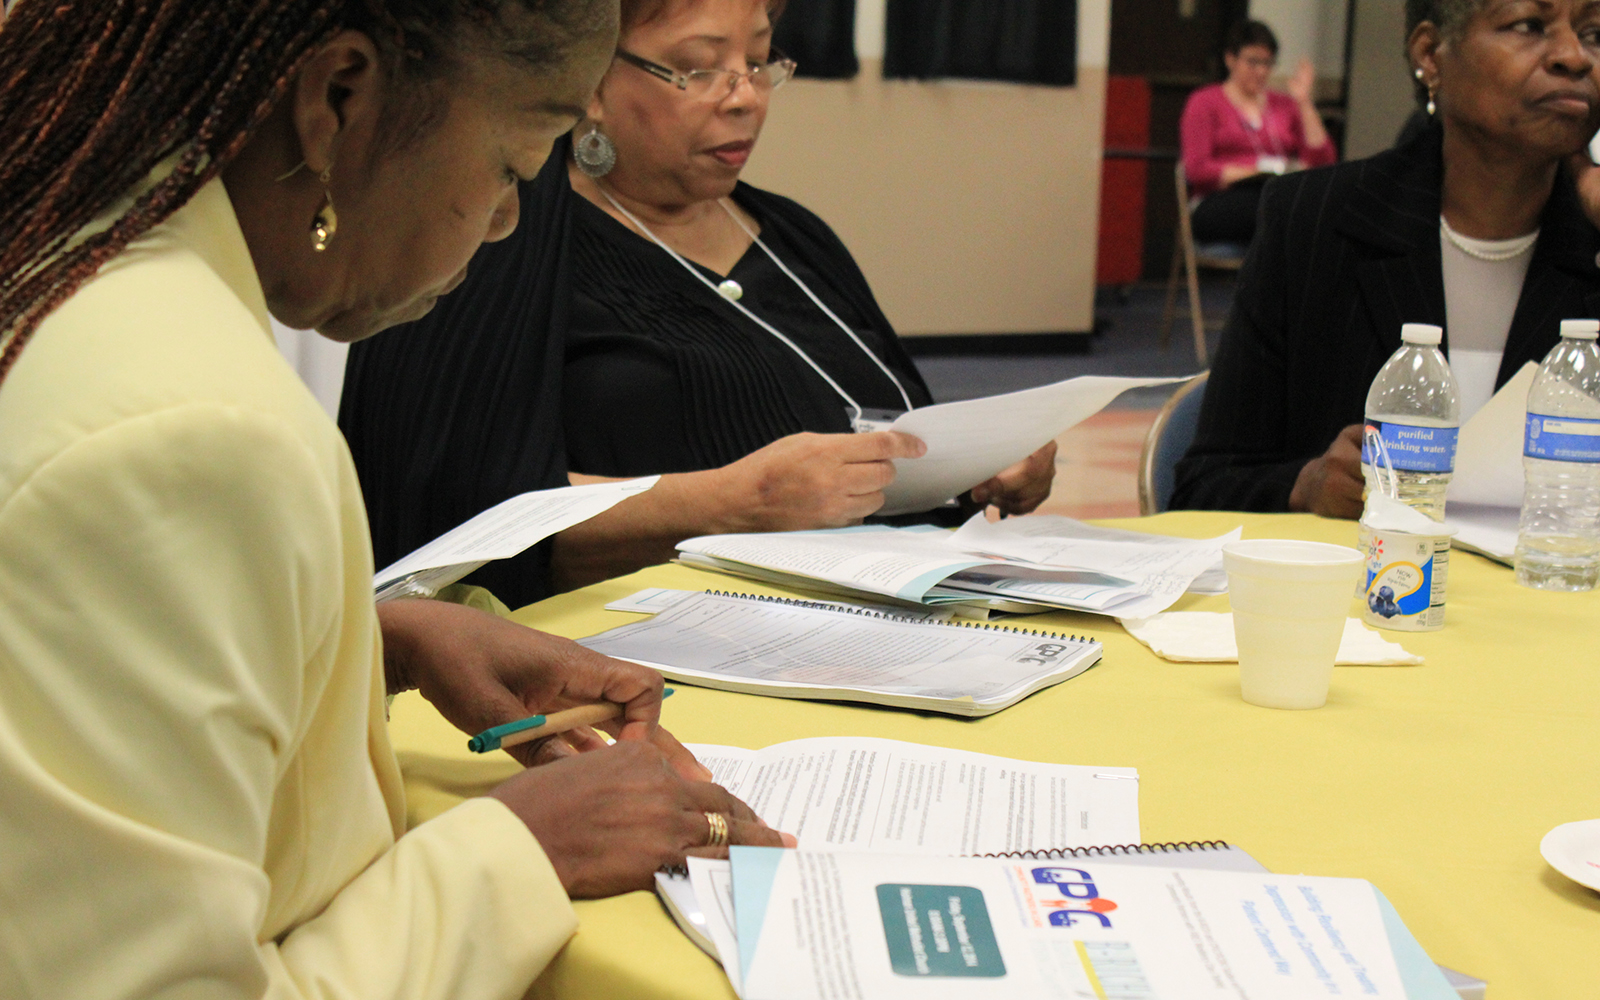 Community members review findings of a PCORI-funded study of approaches to improving depression care. (Photo courtesy of Community Partners in Care)